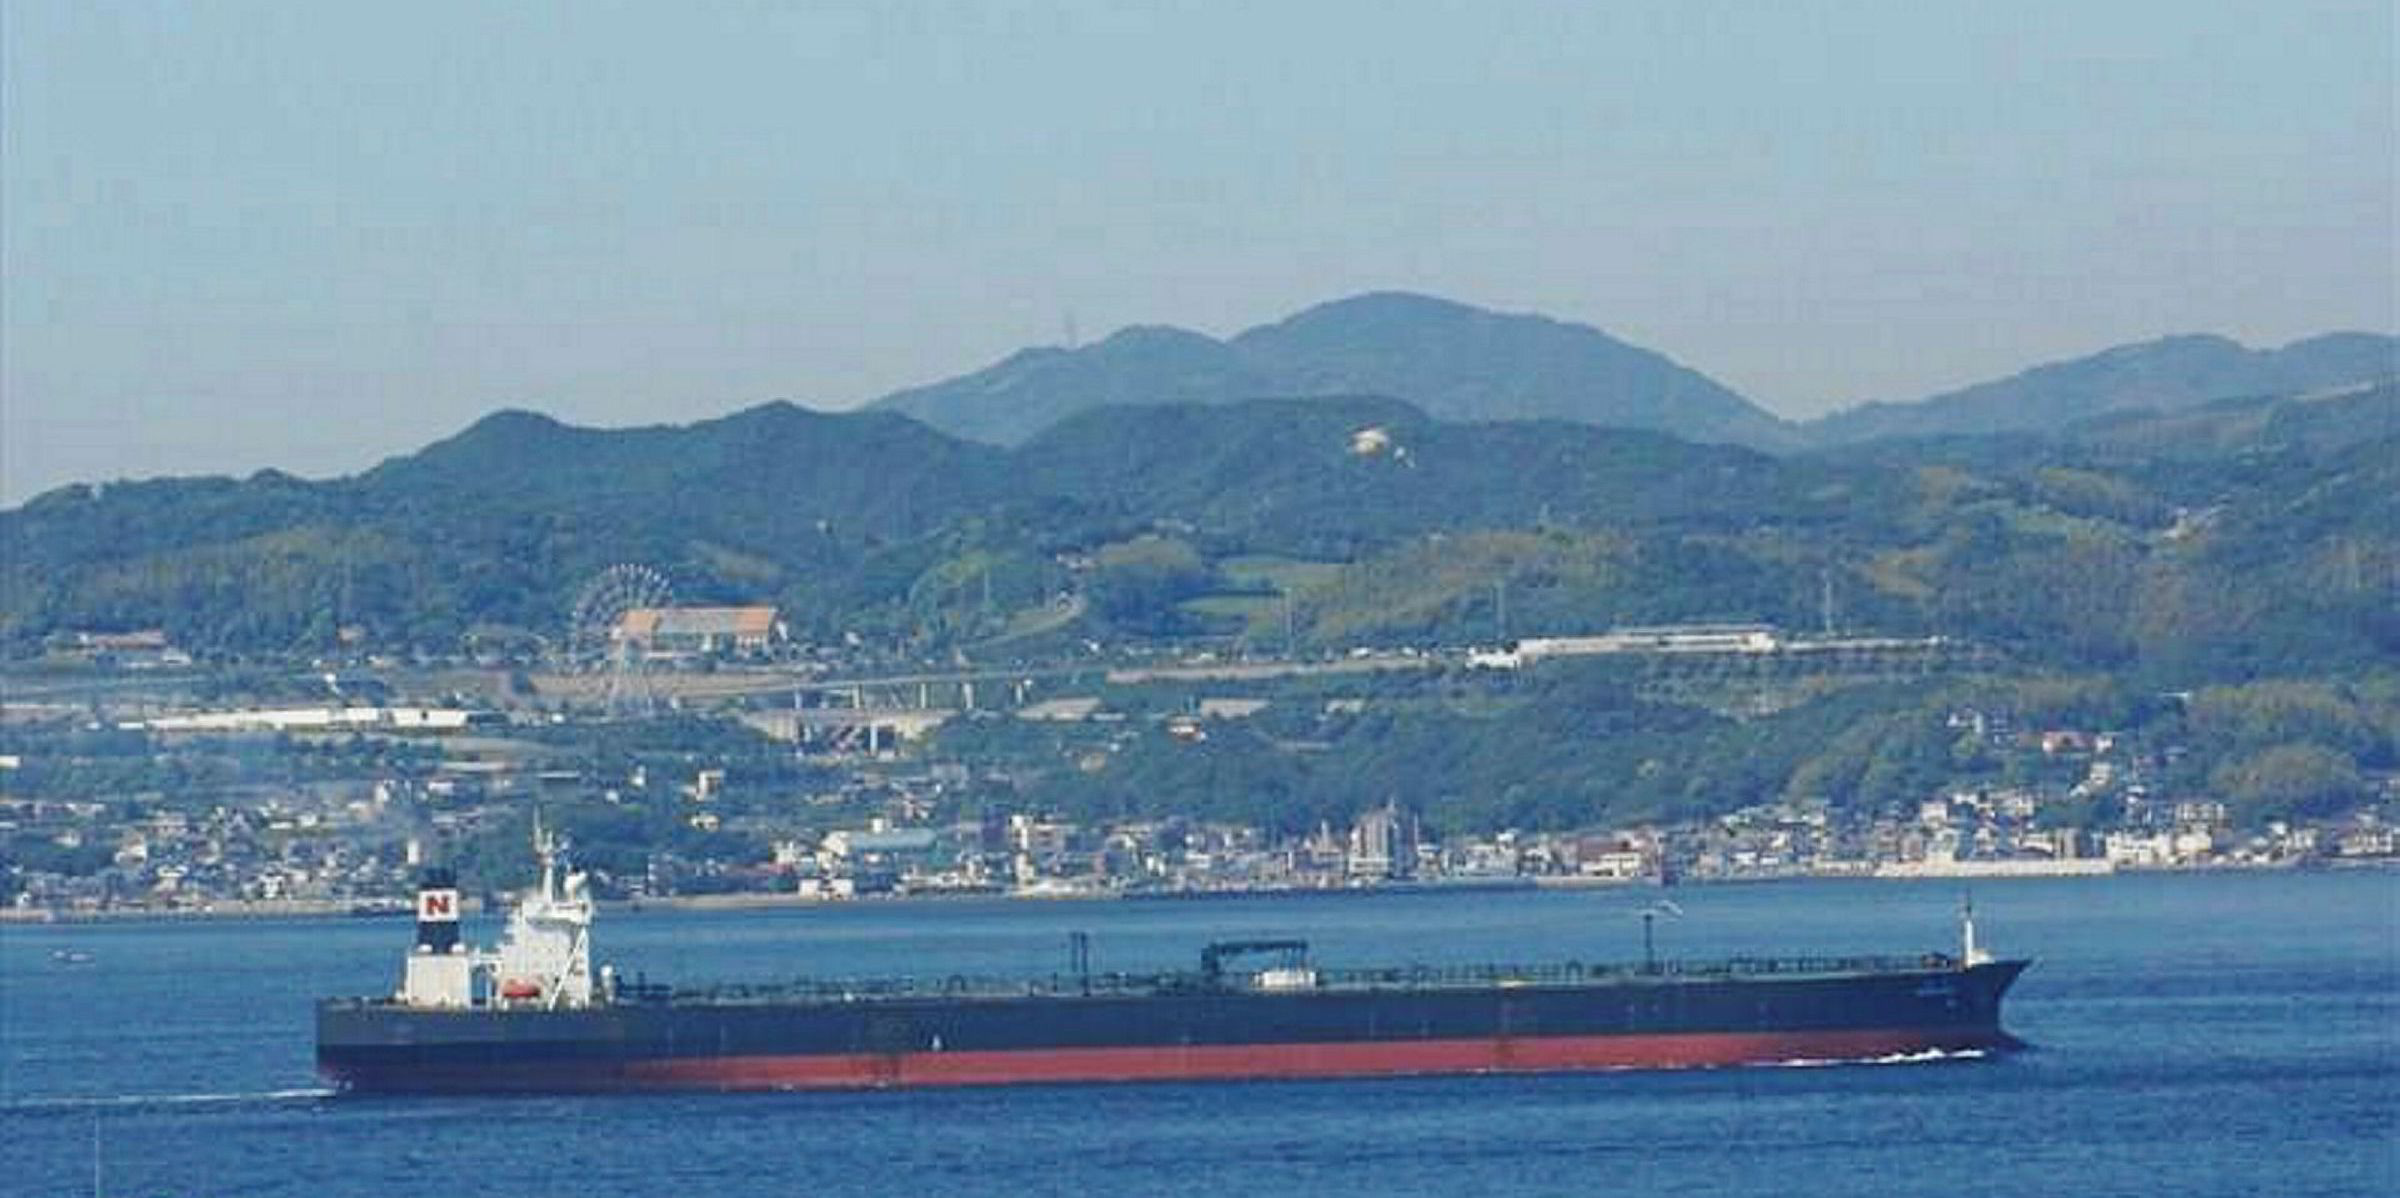 Singapore bunker supplier buys VLCC used for floating